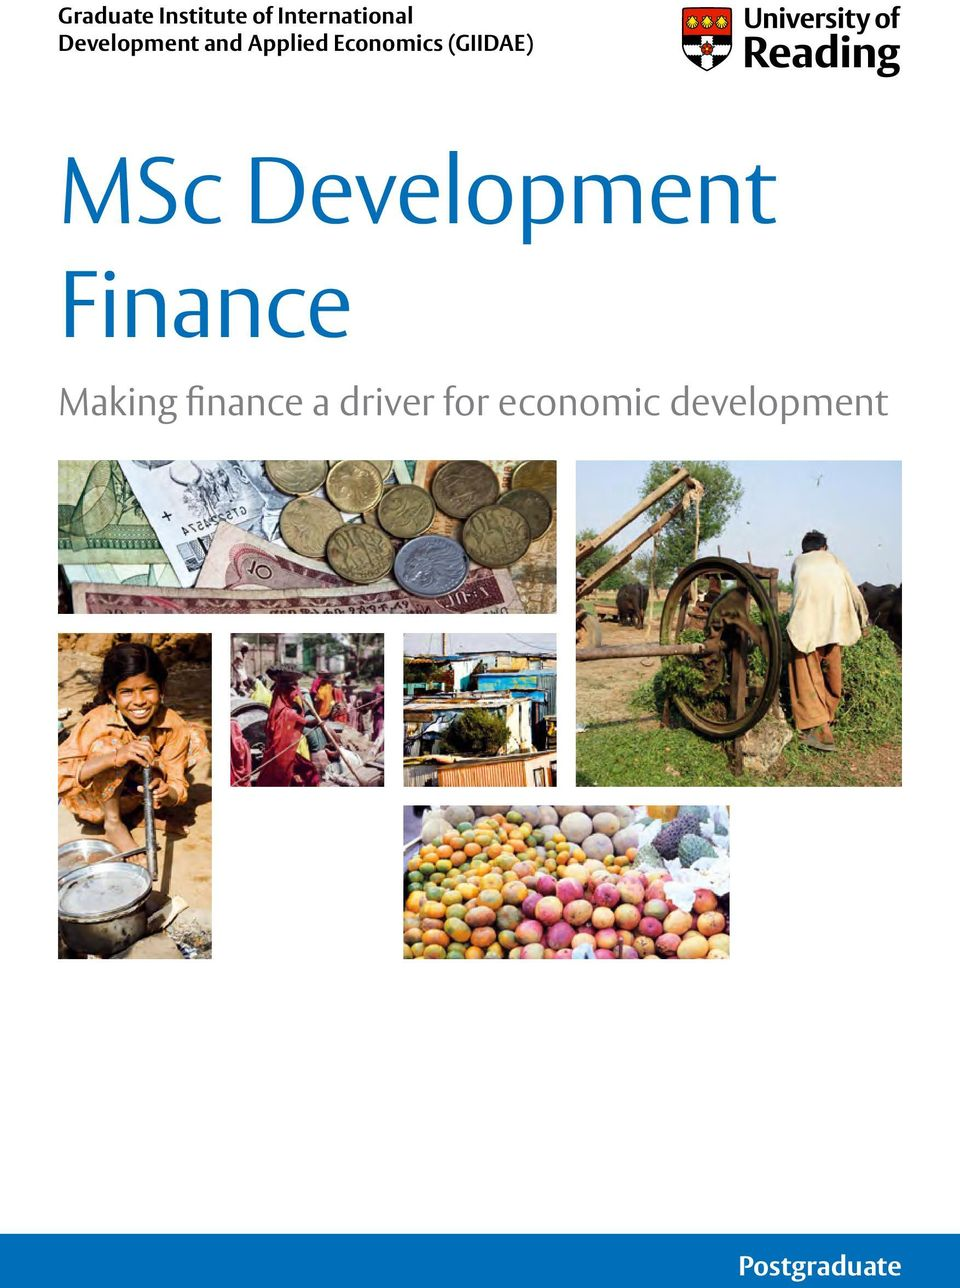 (GIIDAE) MSc Development Finance Making